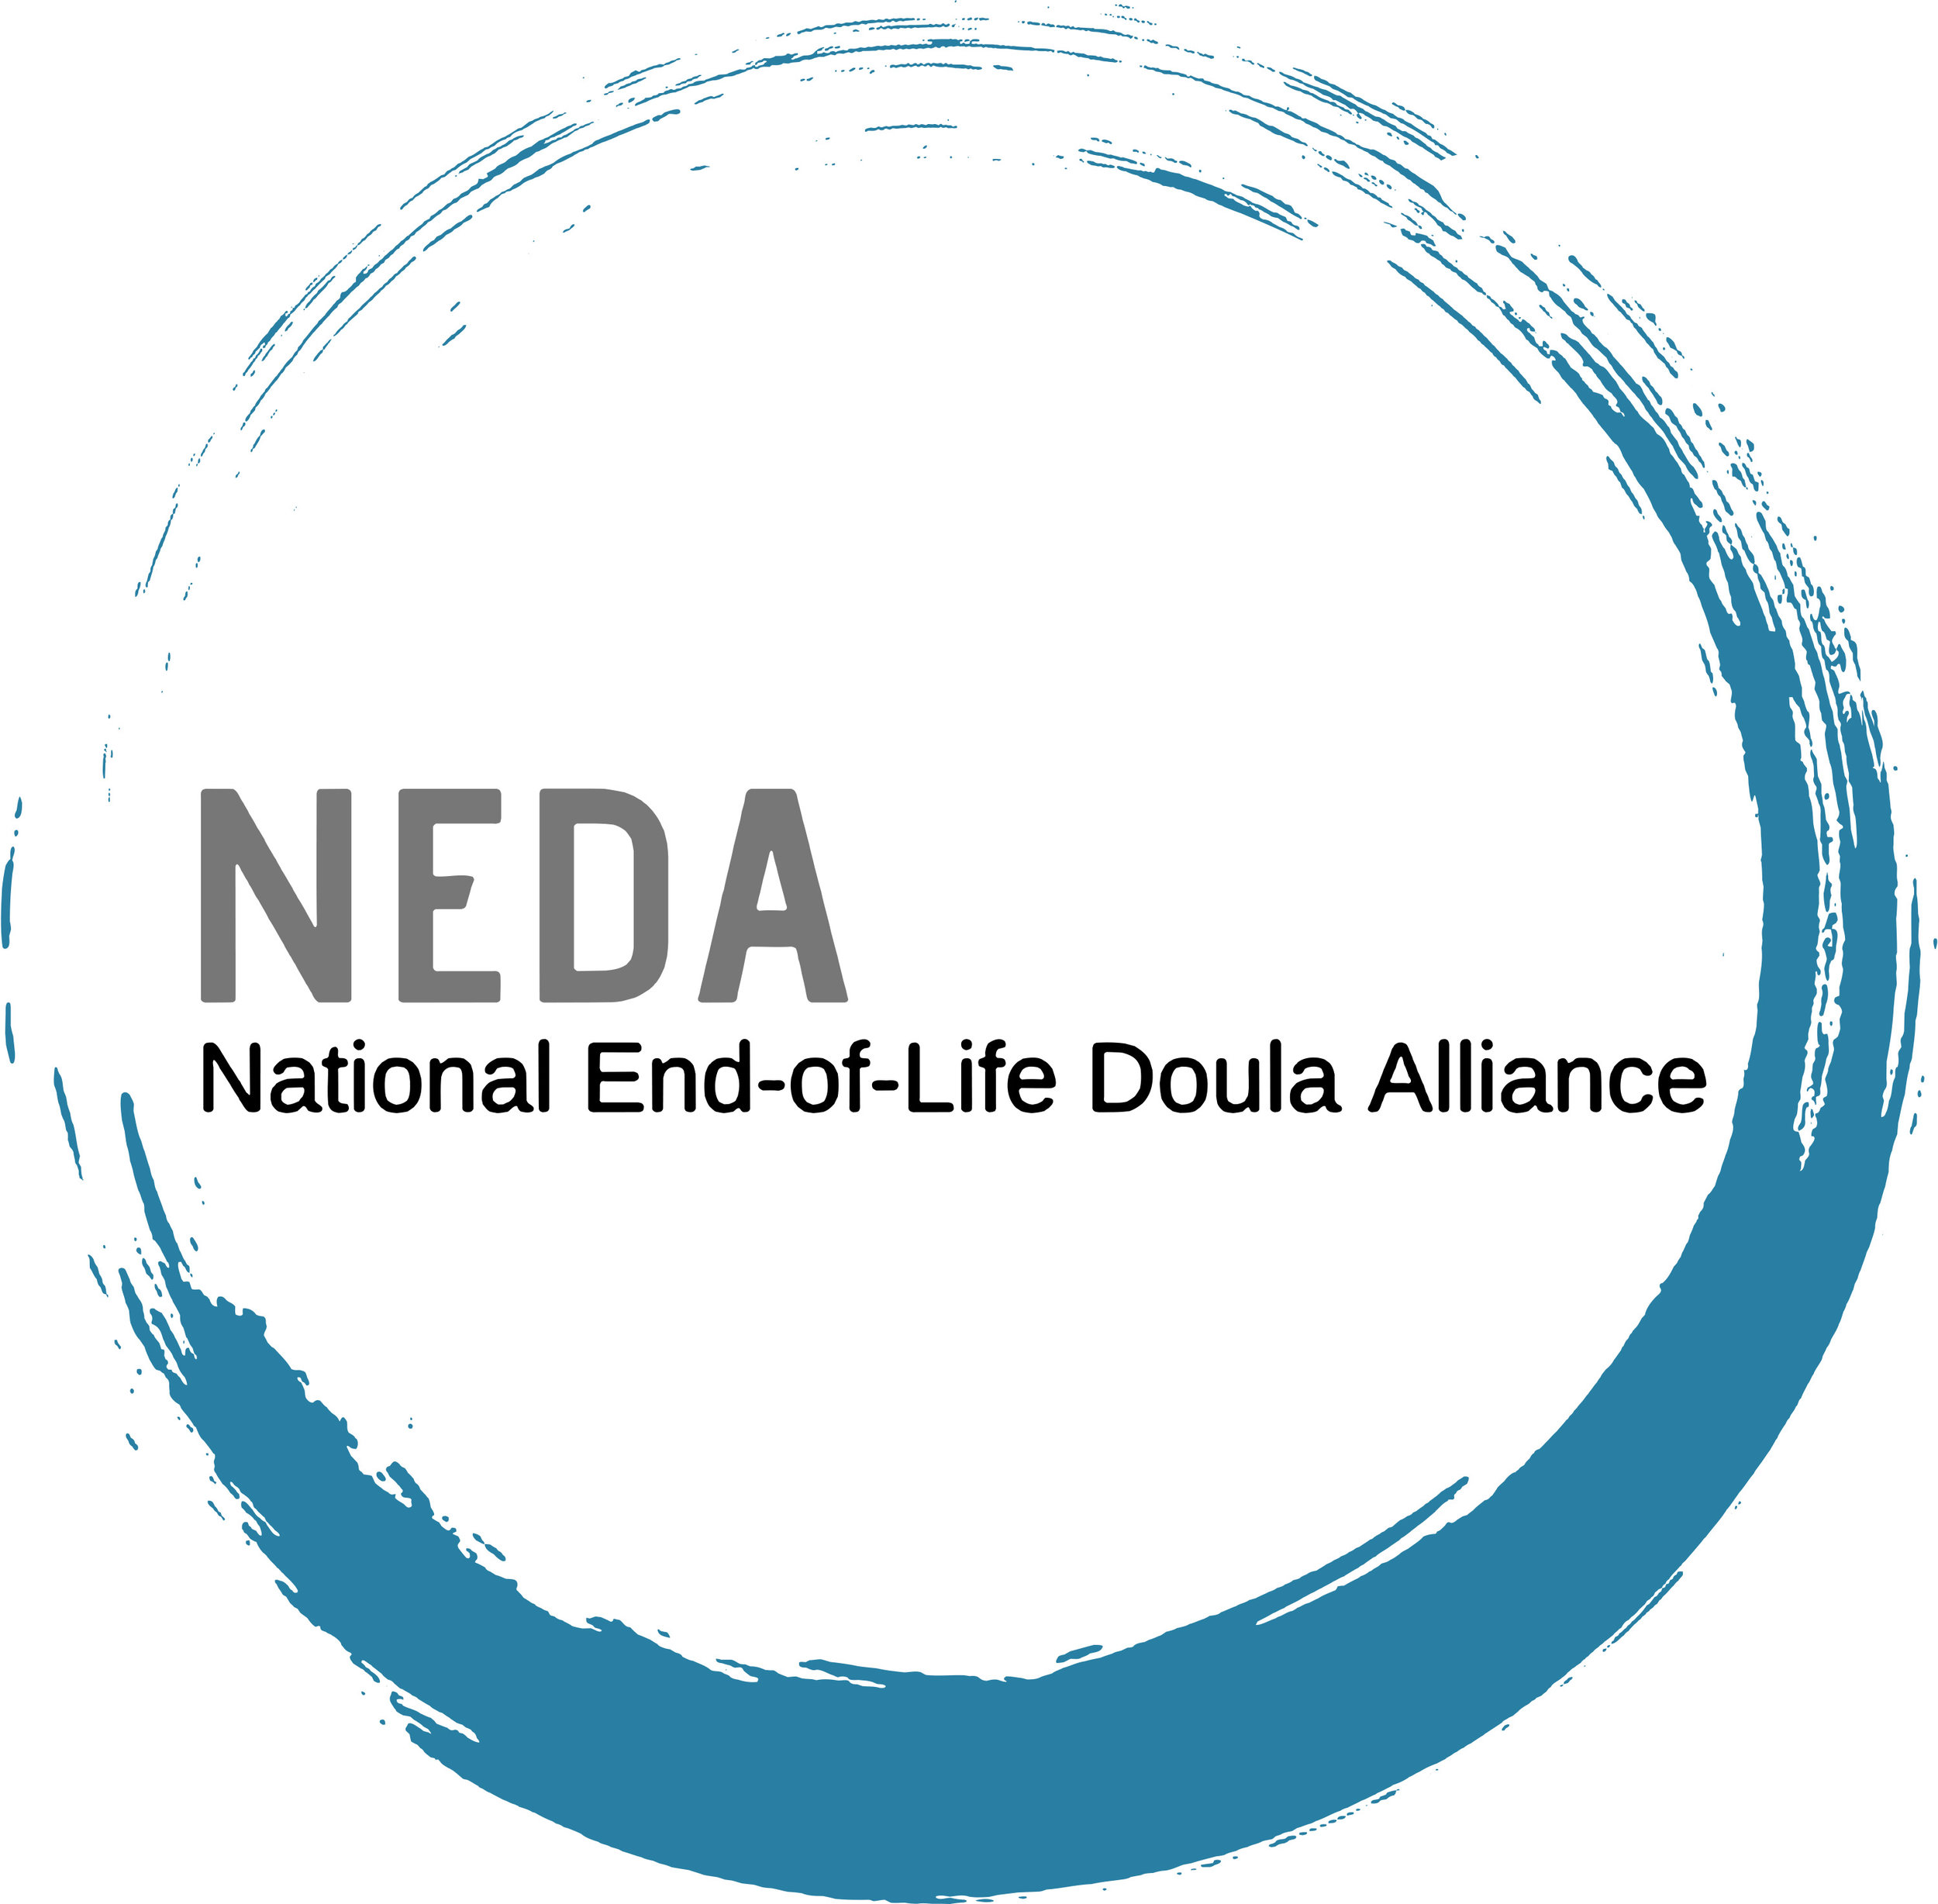 National End-of-Life Doula Alliance